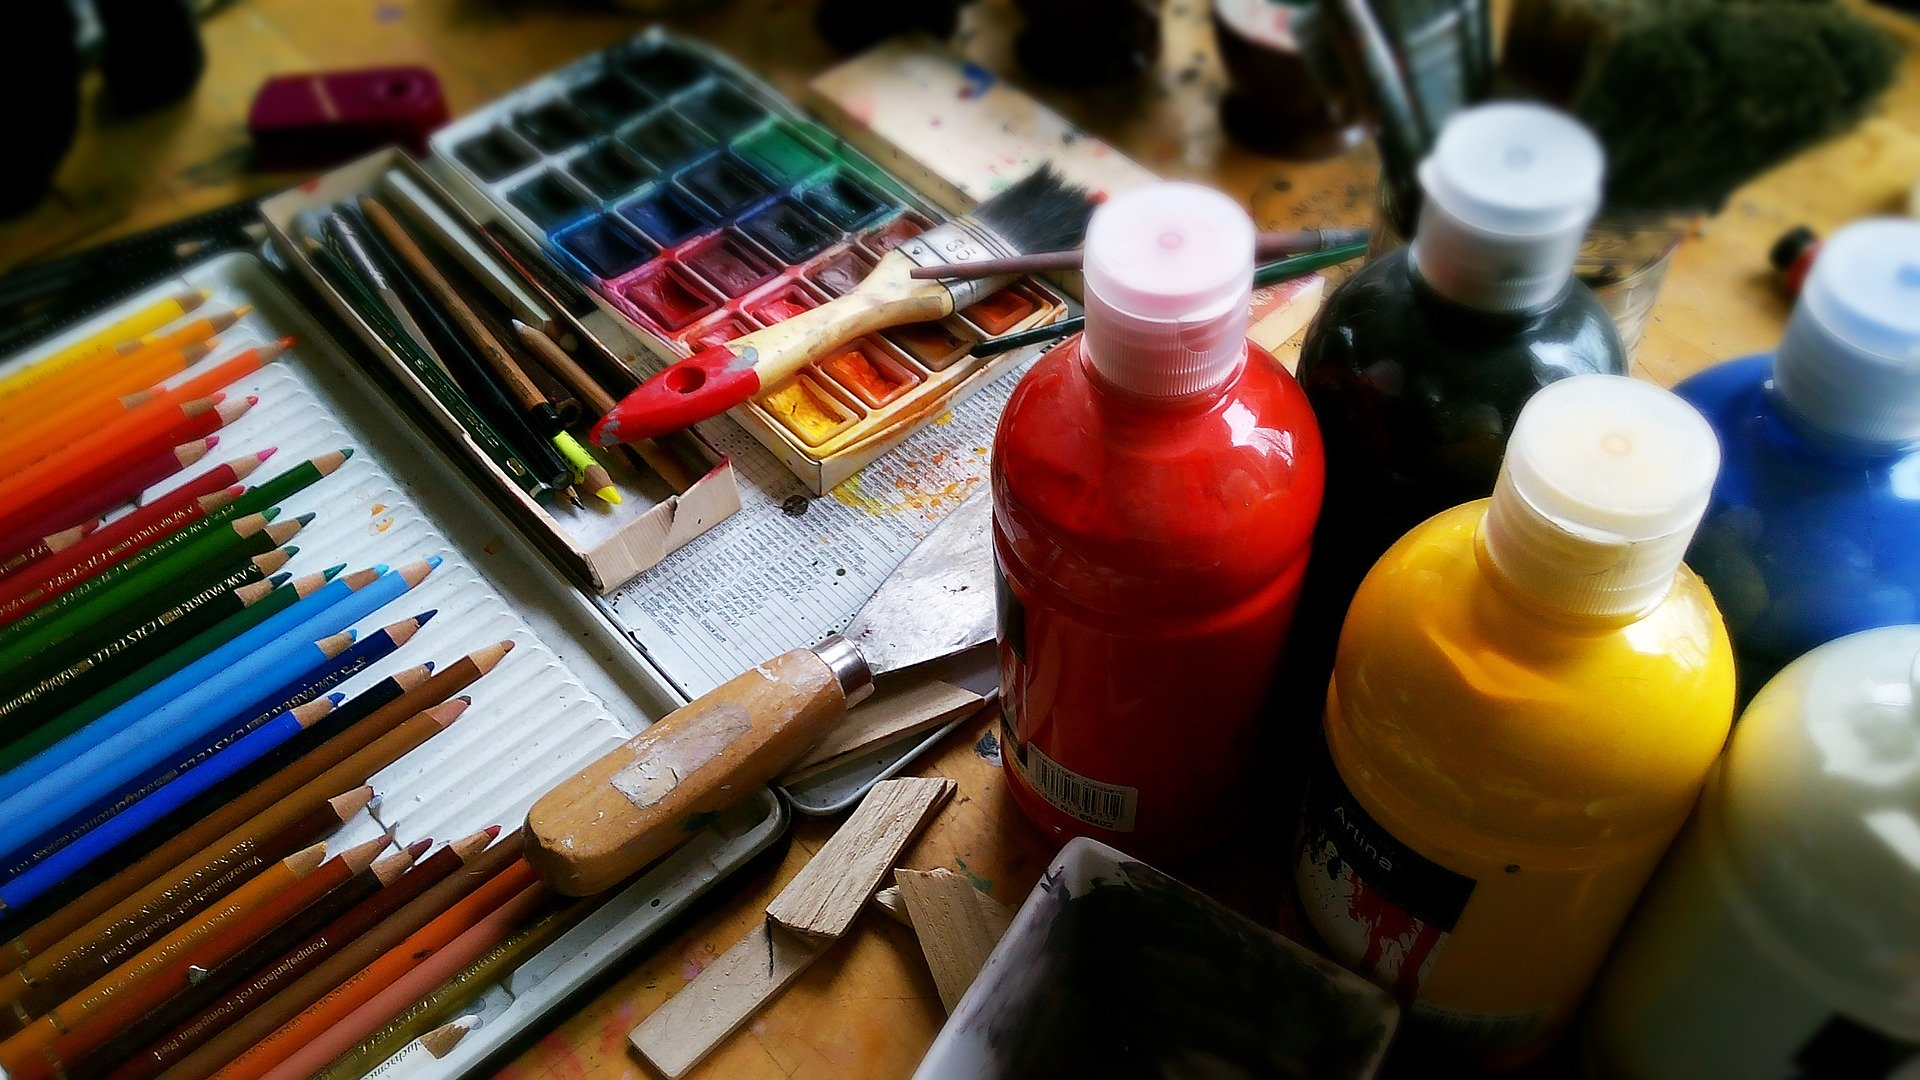 Painting and Water Quality: Does Hard Water Affect the Quality of Watercolor Paints?